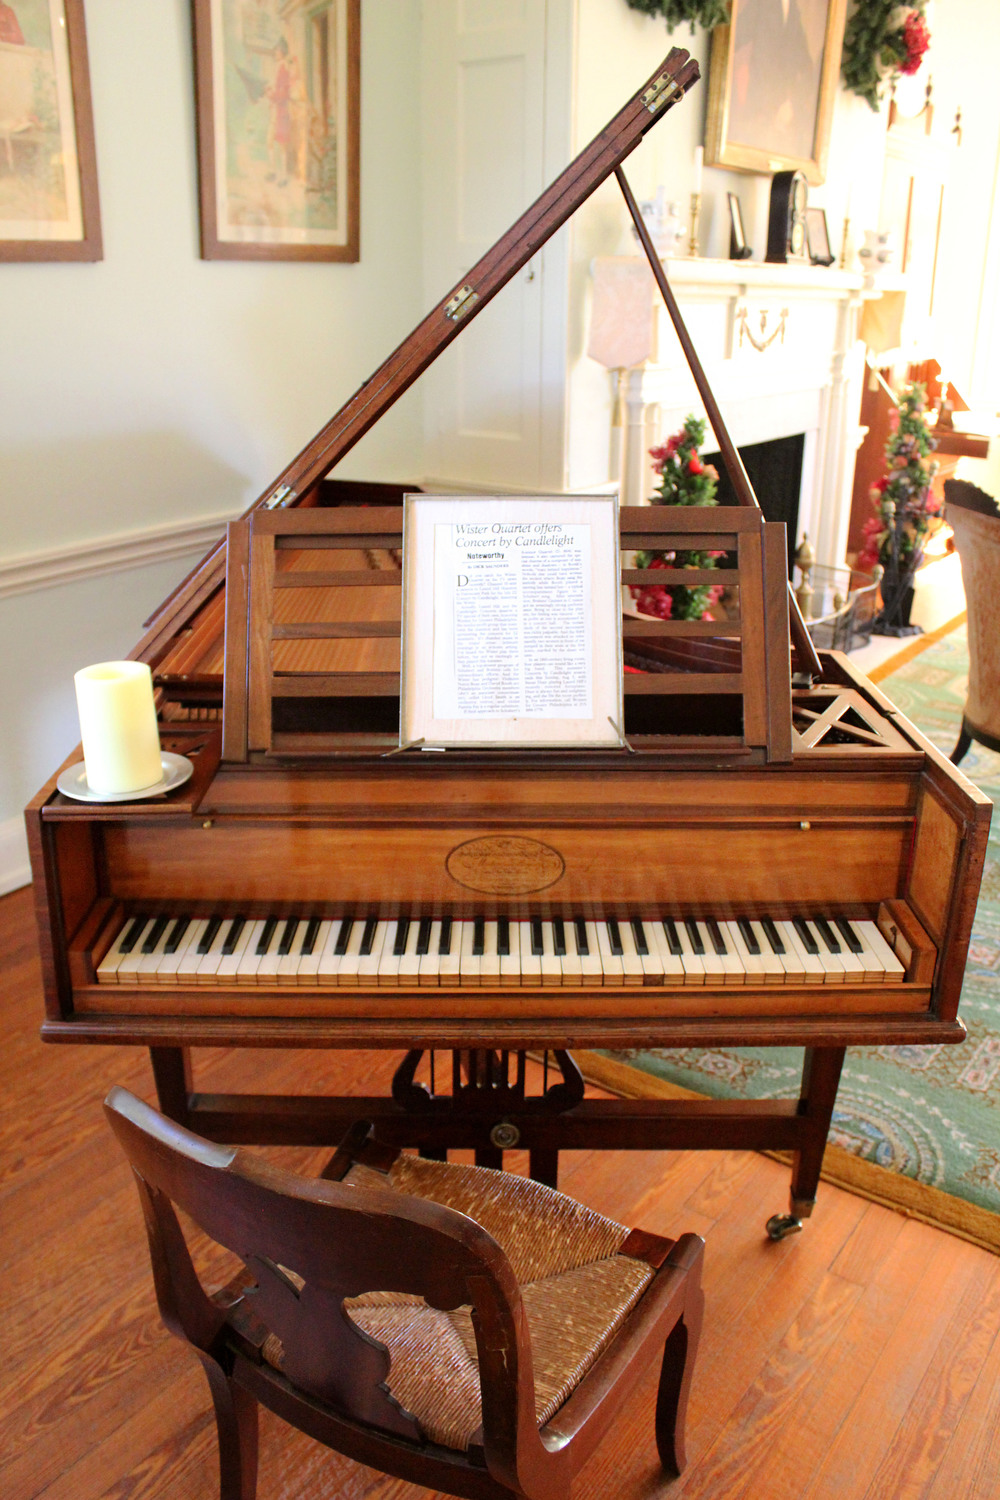 Laurel Hill's 1808 pianoforte, or early piano, sits in the mansion's music room which has hosted its Concerts by Candlelight since the 1970s.